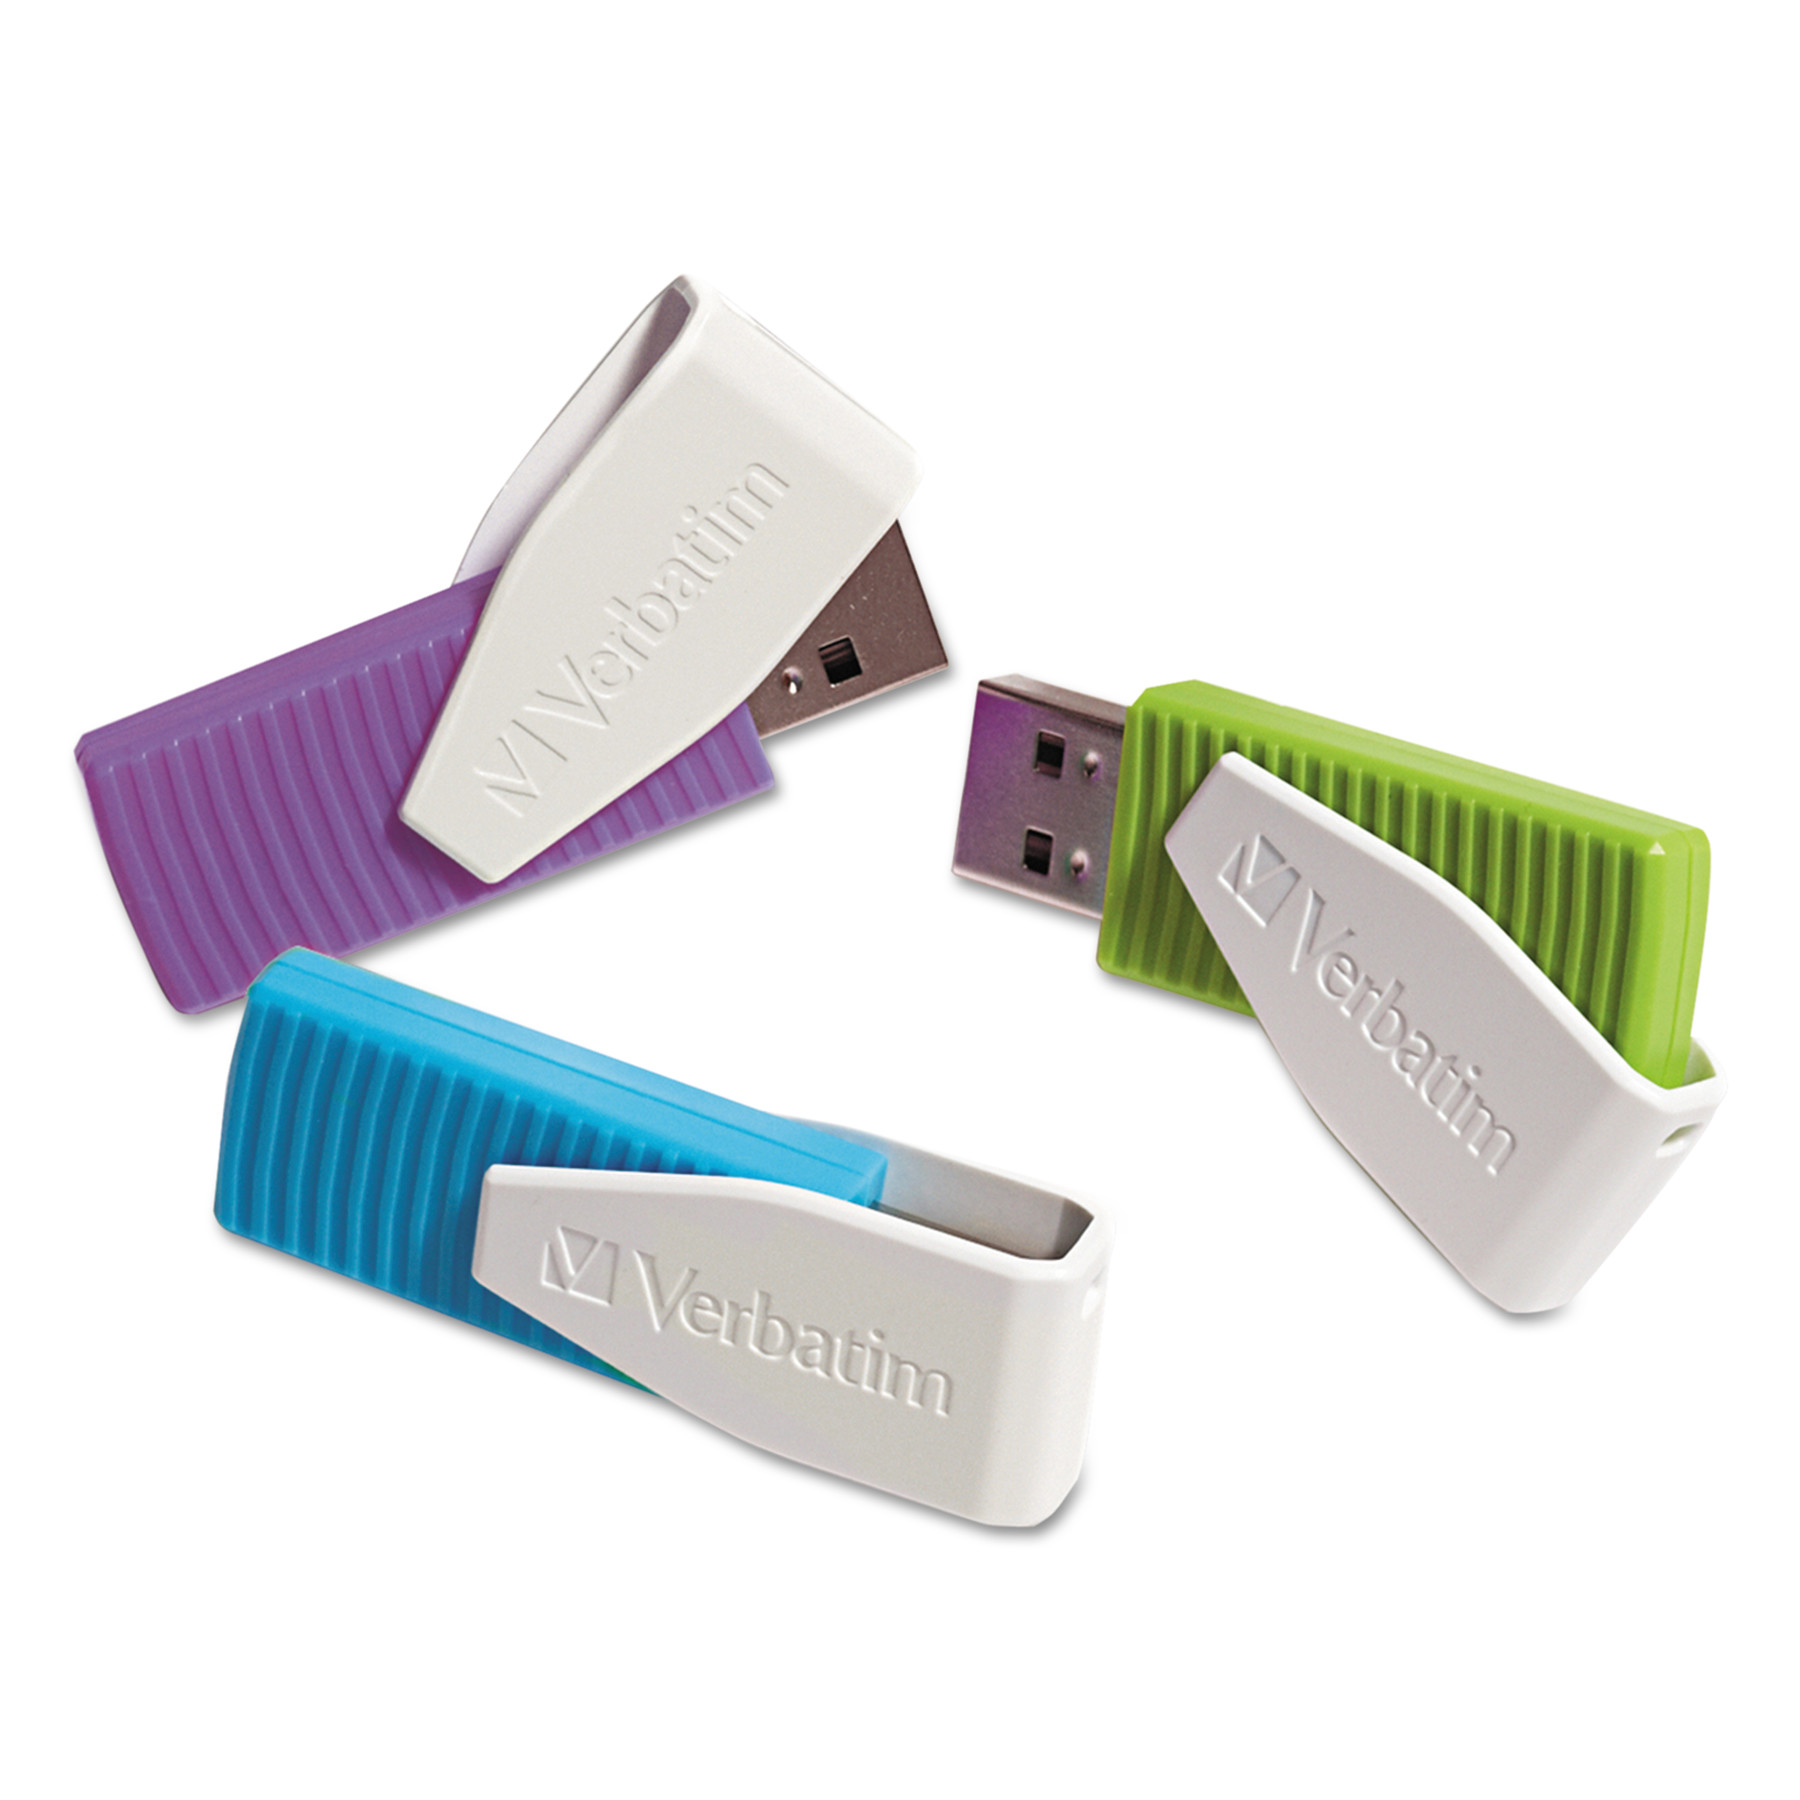 Verbatim Store 'n' Go Swivel USB 2.0 Flash Drive, 8GB, Blue/Green/Violet, 3/Pack -VER98426